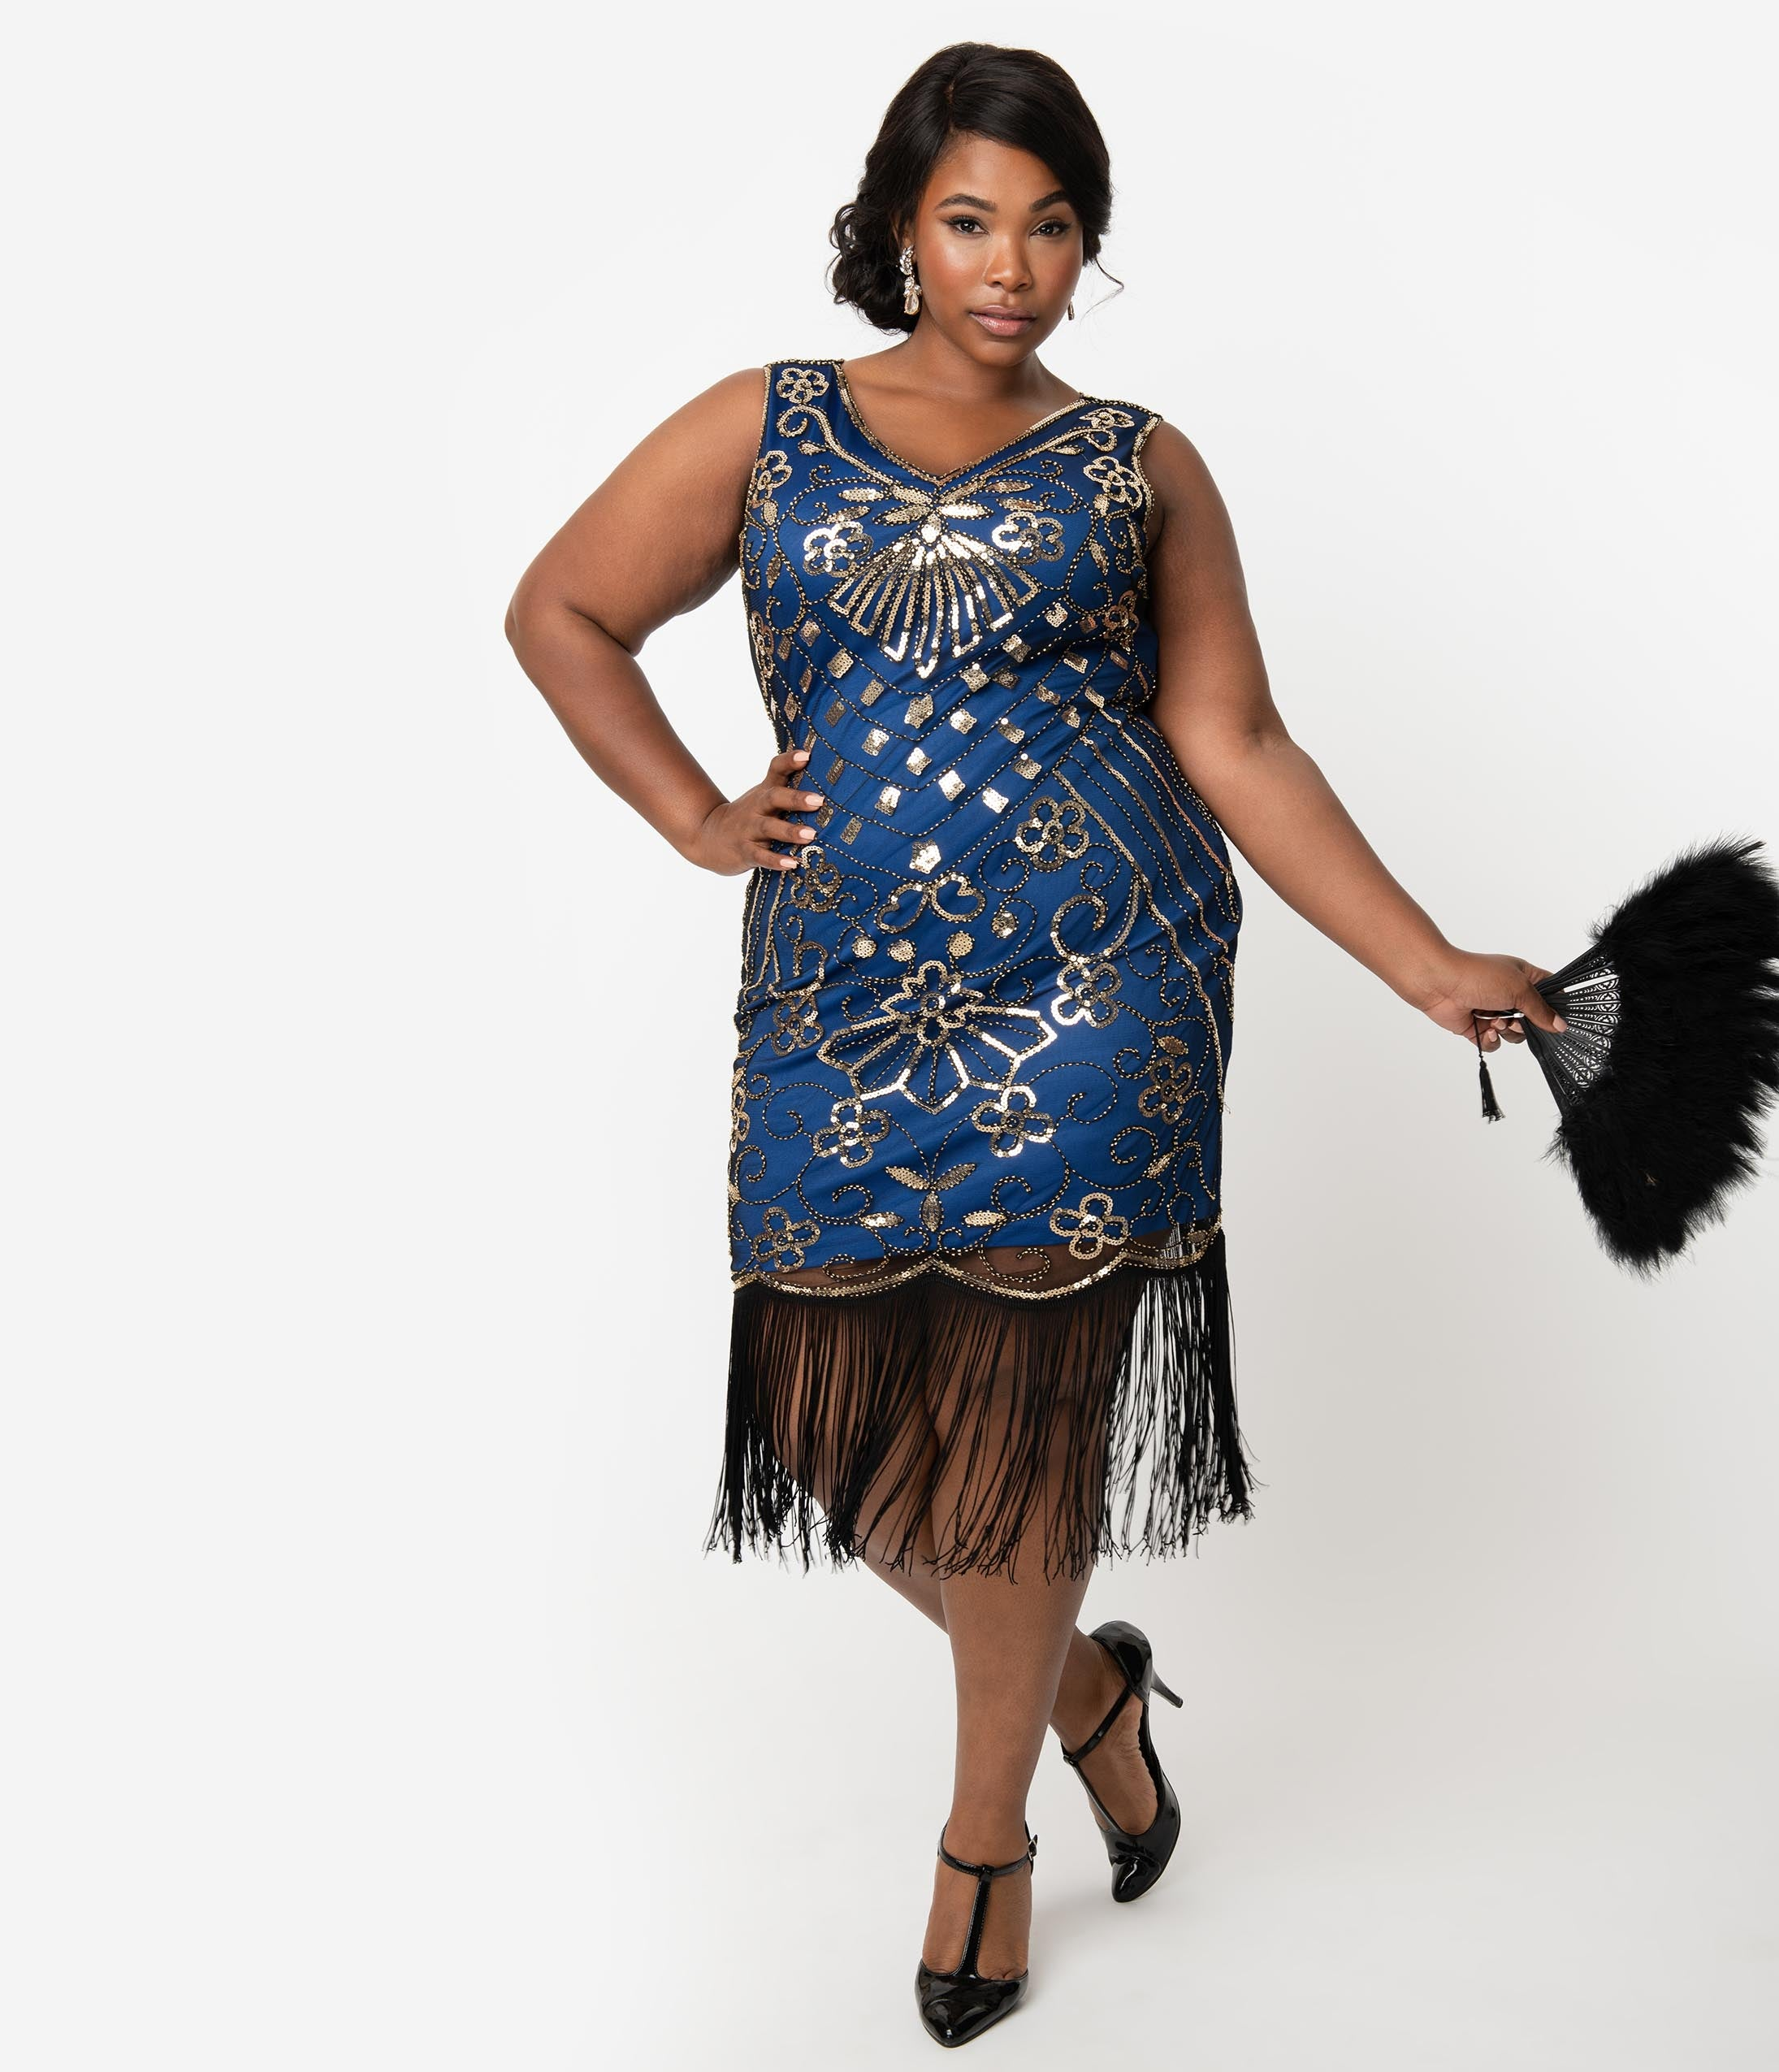 1920s Plus Size Flapper Dresses, Gatsby Dresses, Flapper Costumes Unique Vintage Plus Size Deco Style Blue  Gold Sequin Laurentine Fringe Flapper Dress $98.00 AT vintagedancer.com